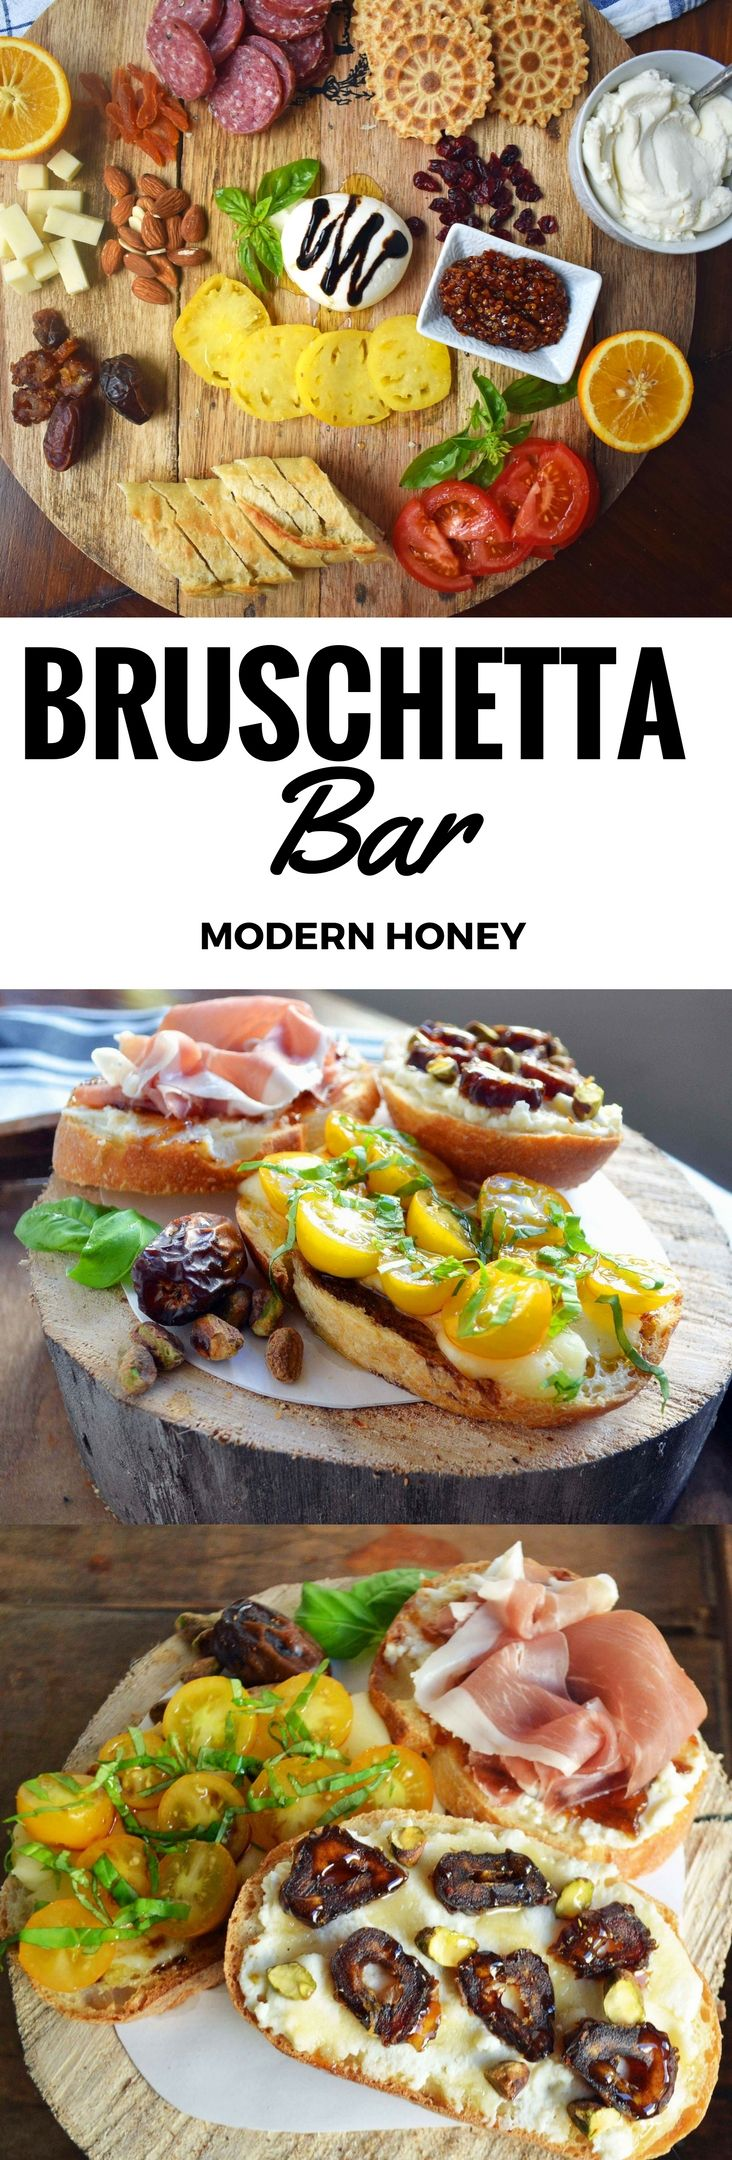 Bruschetta Bar and Charcuterie Board Ideas for the perfect party appetizer. Bruschetta toppings ideas and flavor combinations that everyone will love. www.modernhoney.com